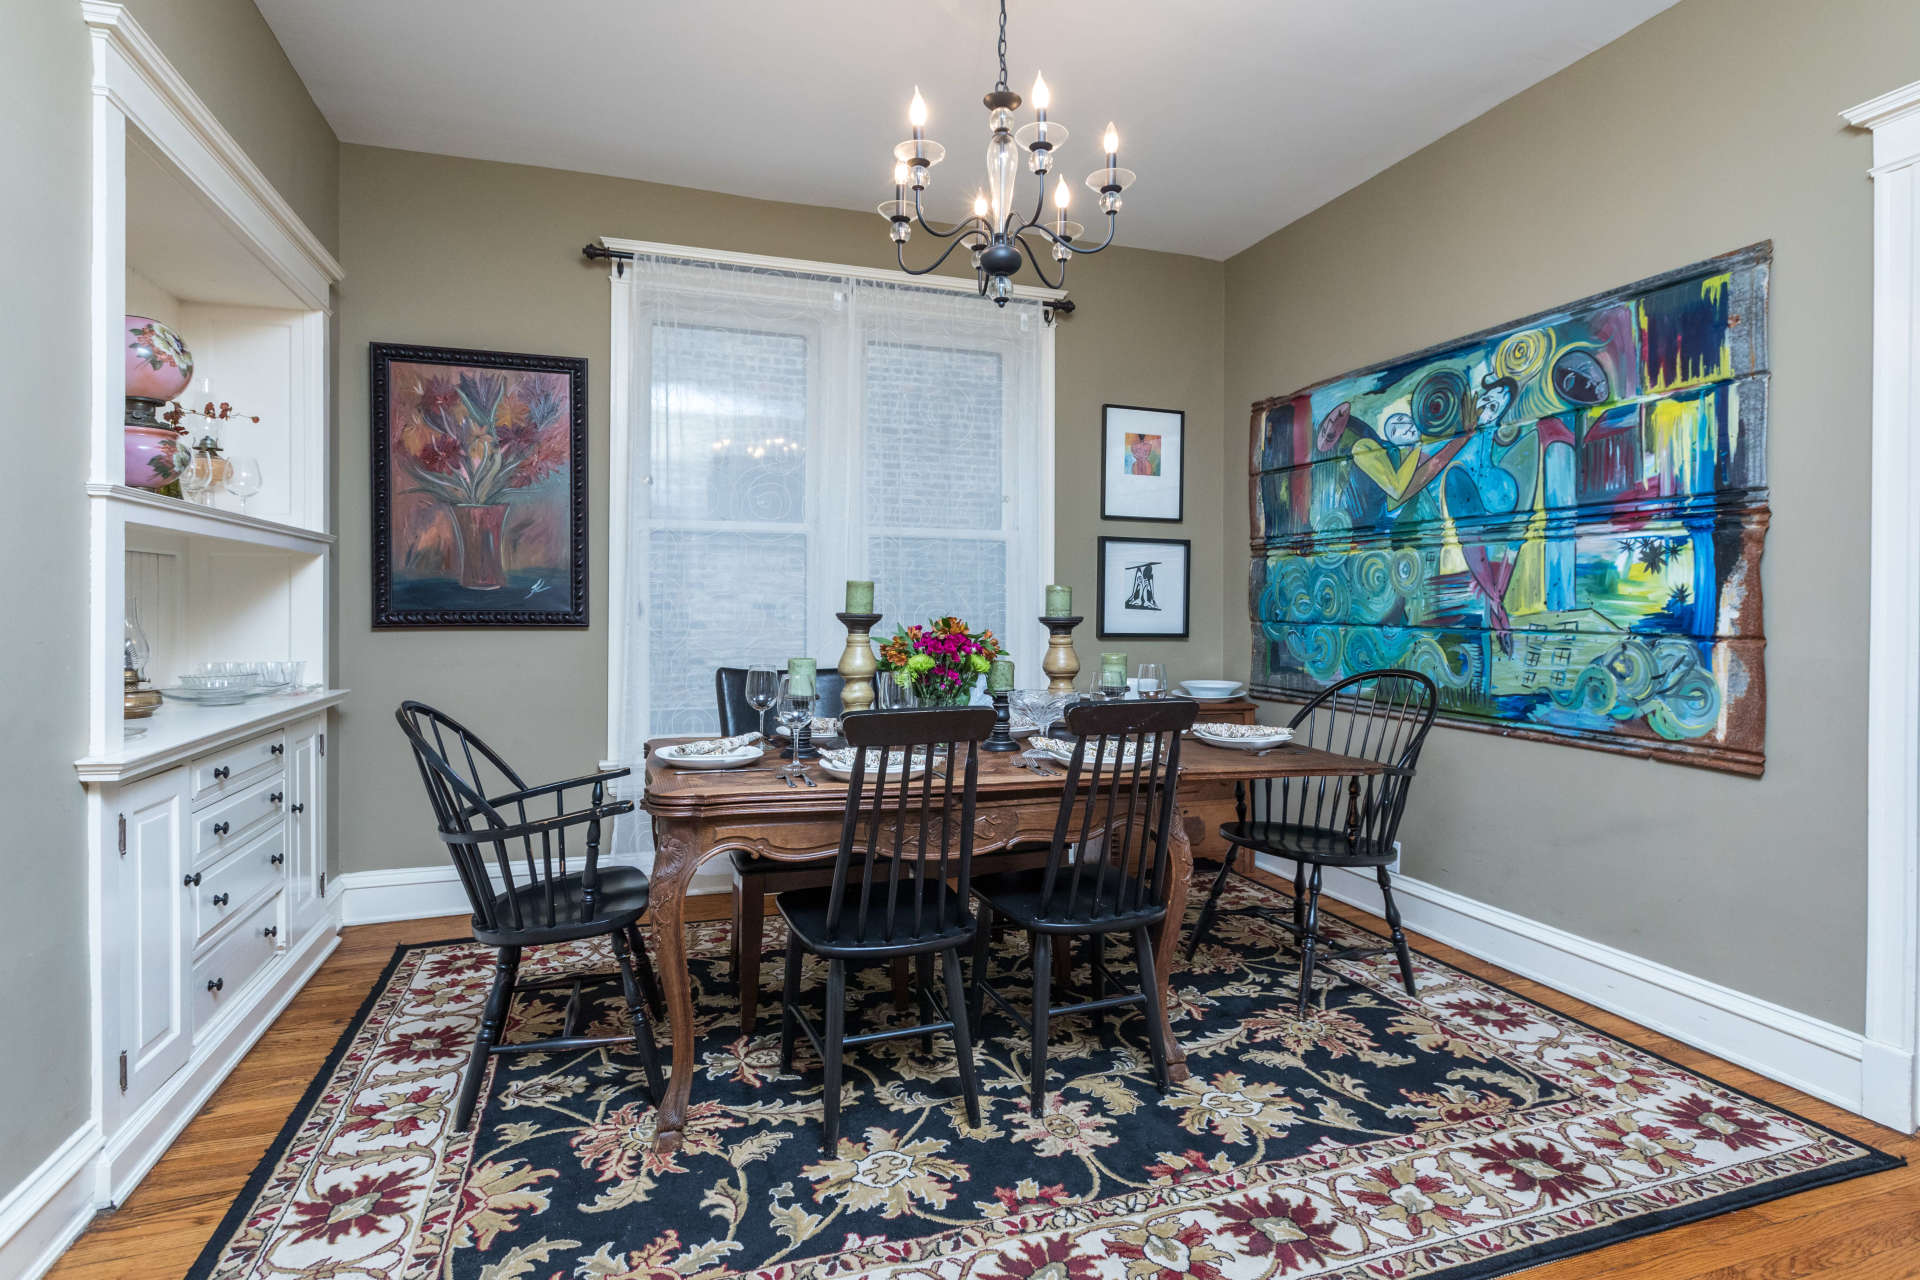 Chicago Guest House Vacation Rental picture of the dining room